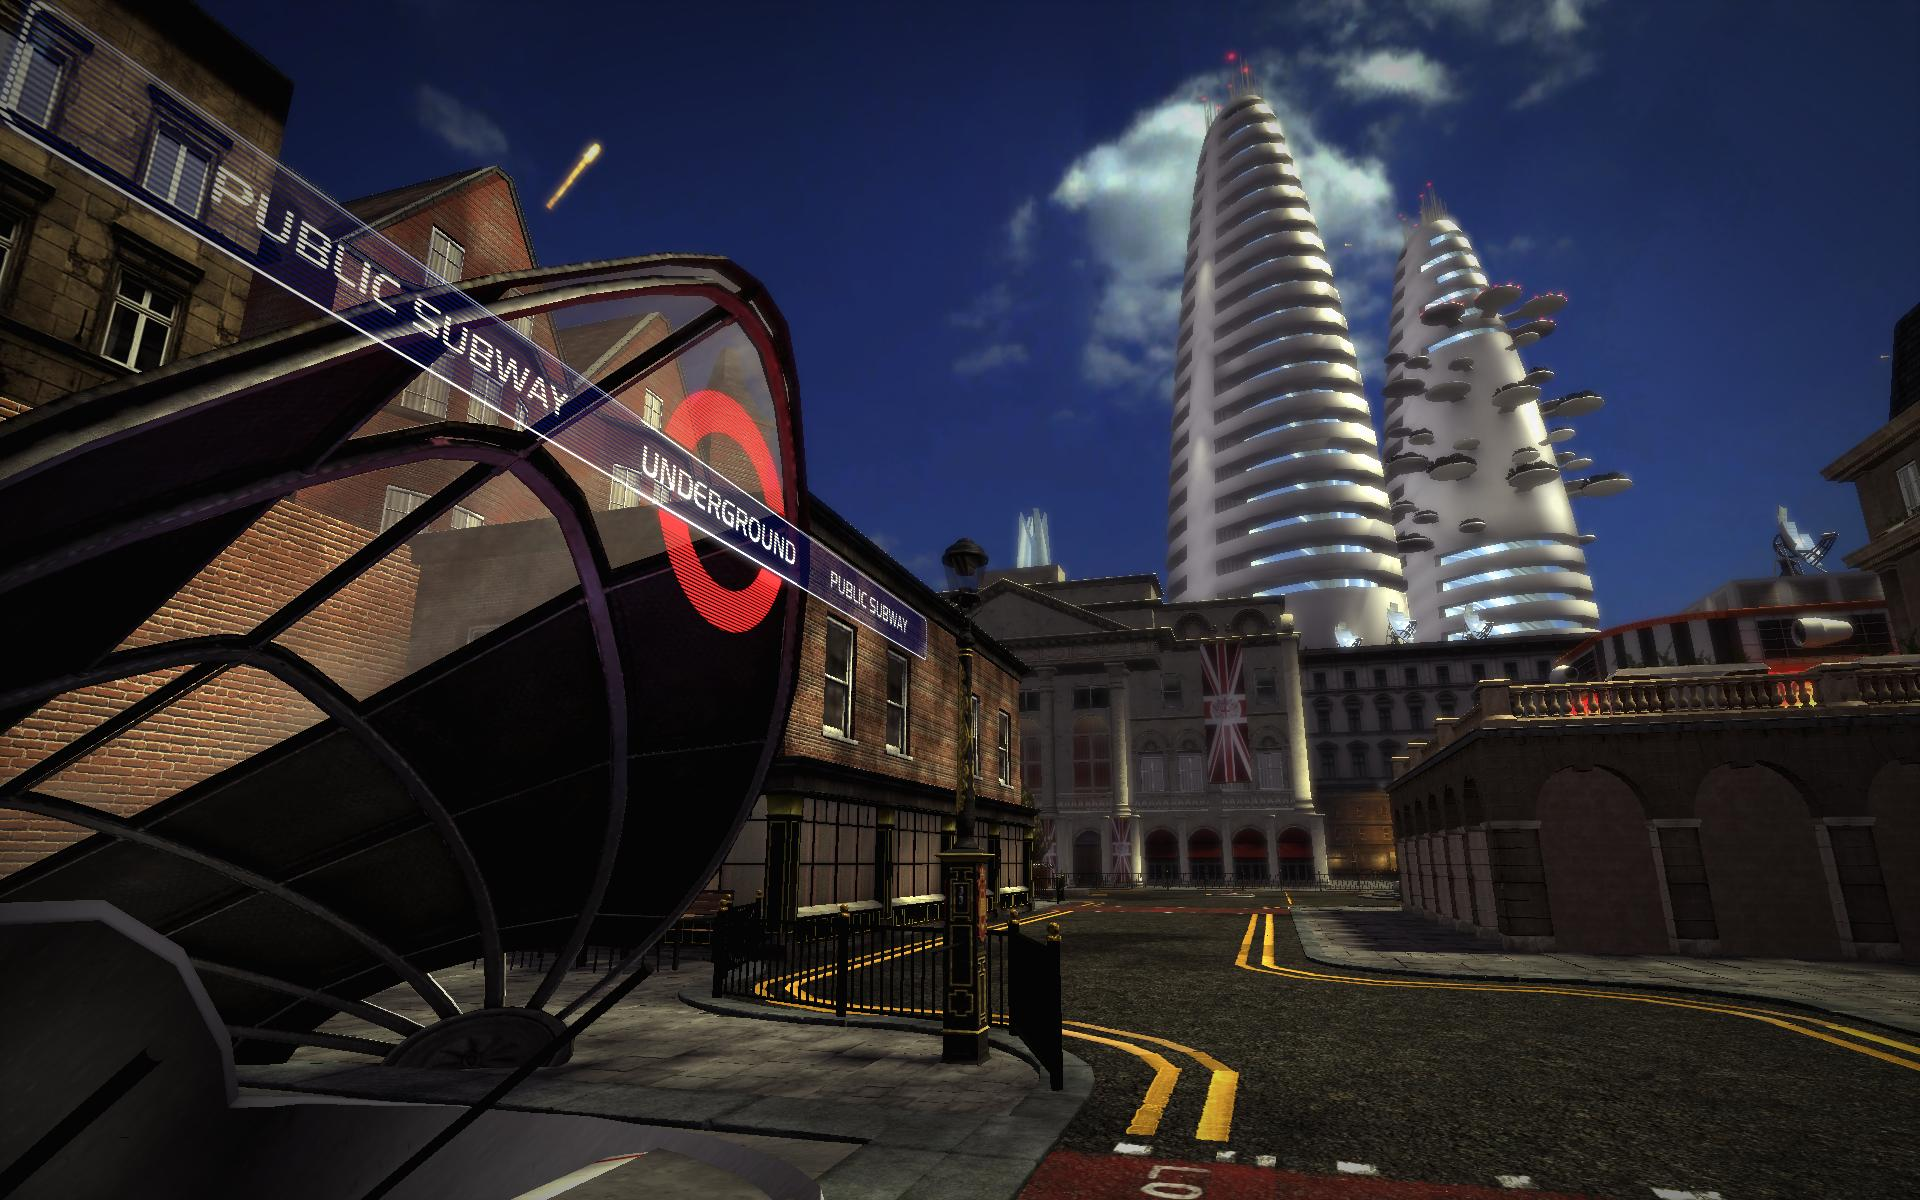 Future London: the Entrance